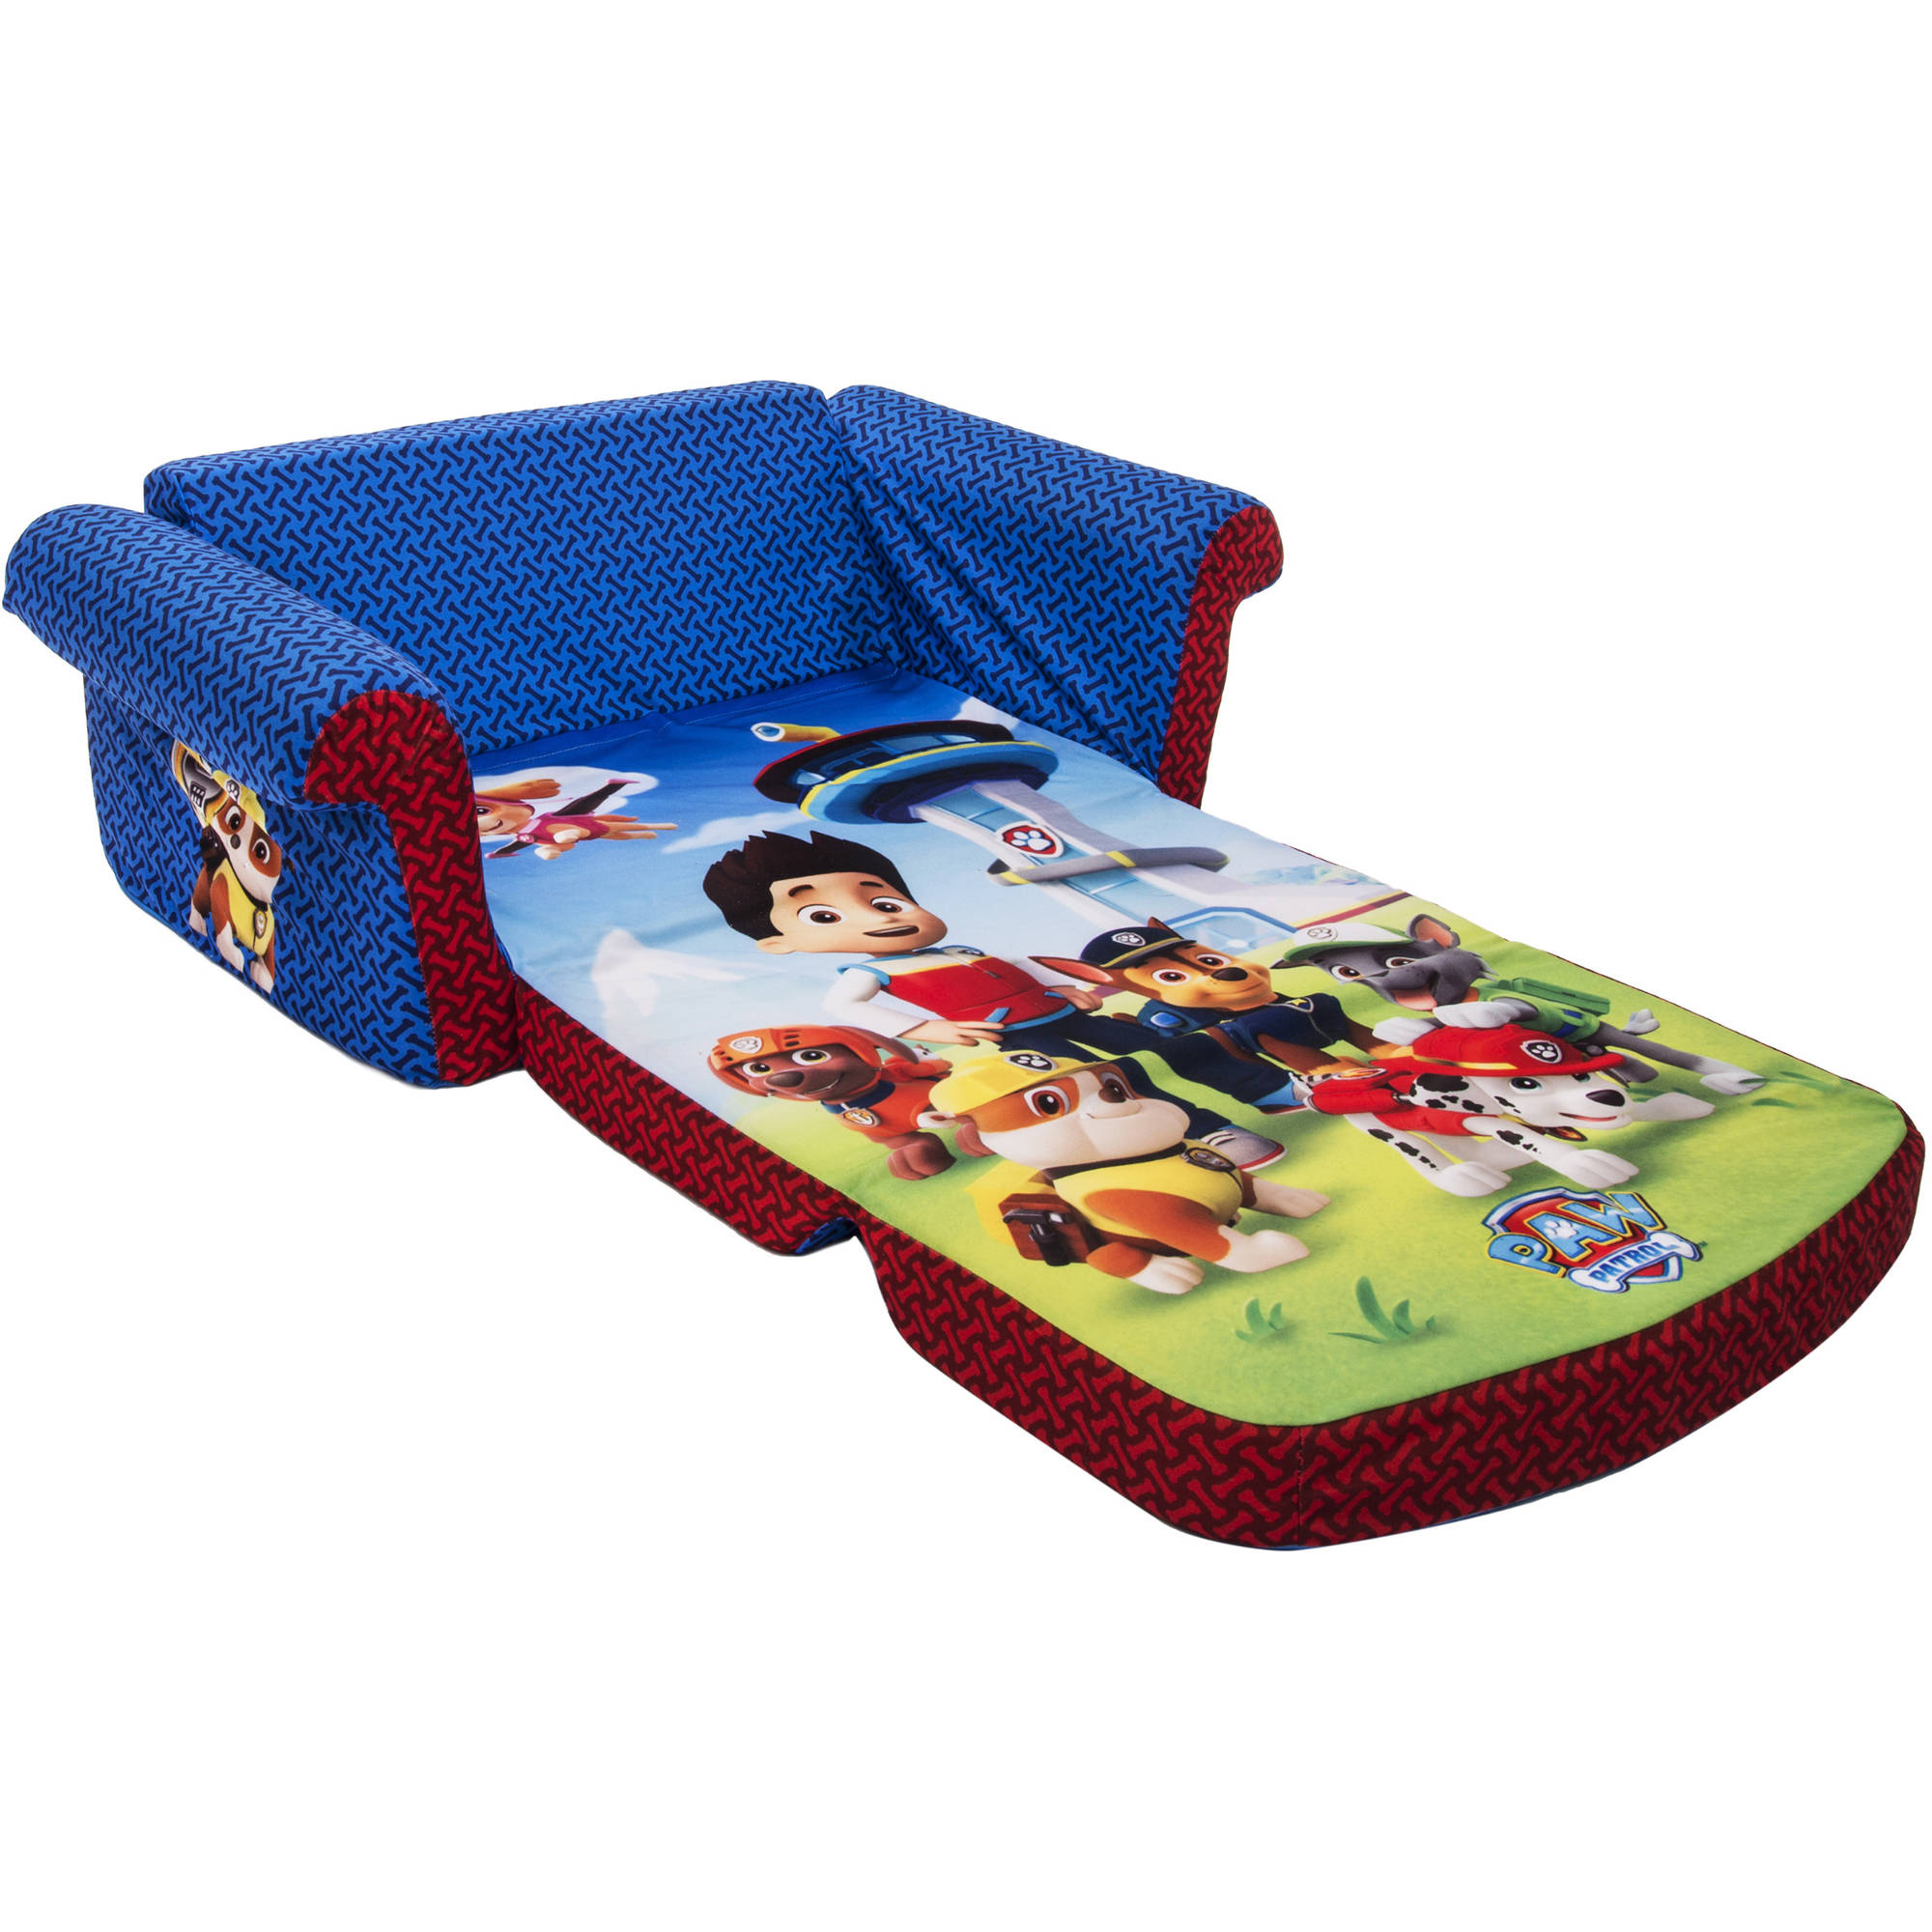 paw patrol flip open sofa target ashley furniture darcy cleaning  review home decor